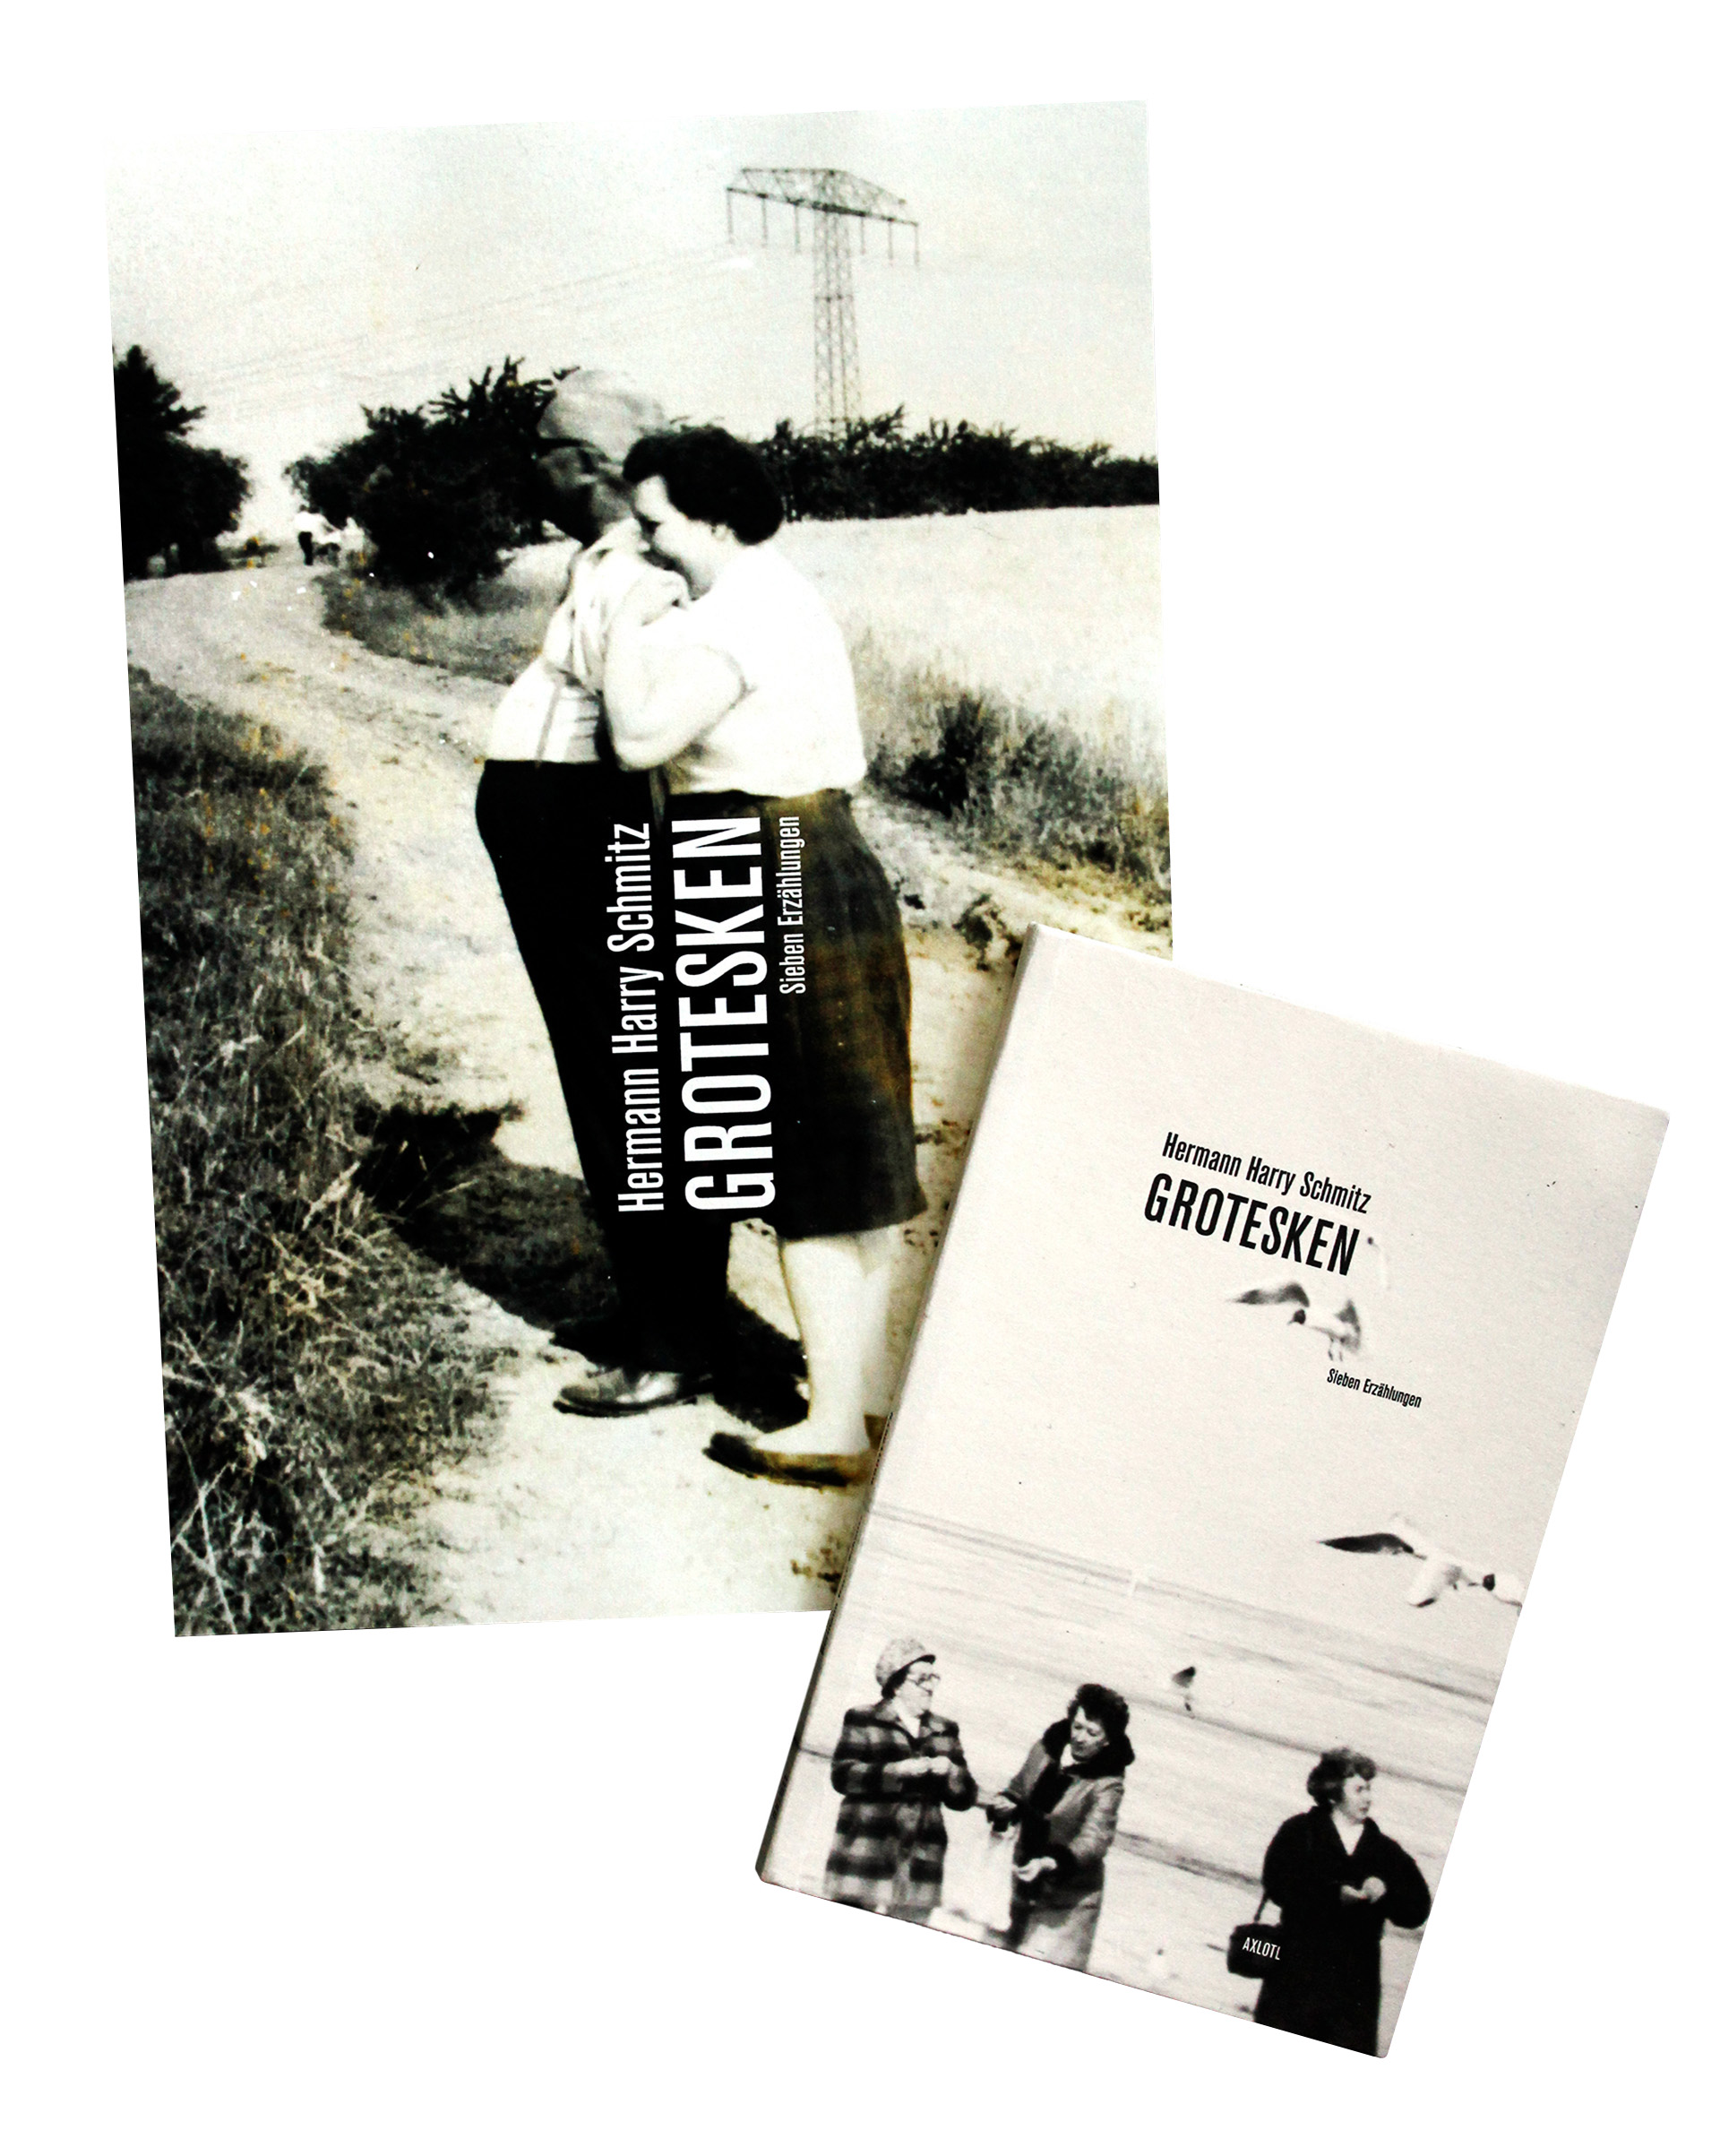 Book cover and promotional poster